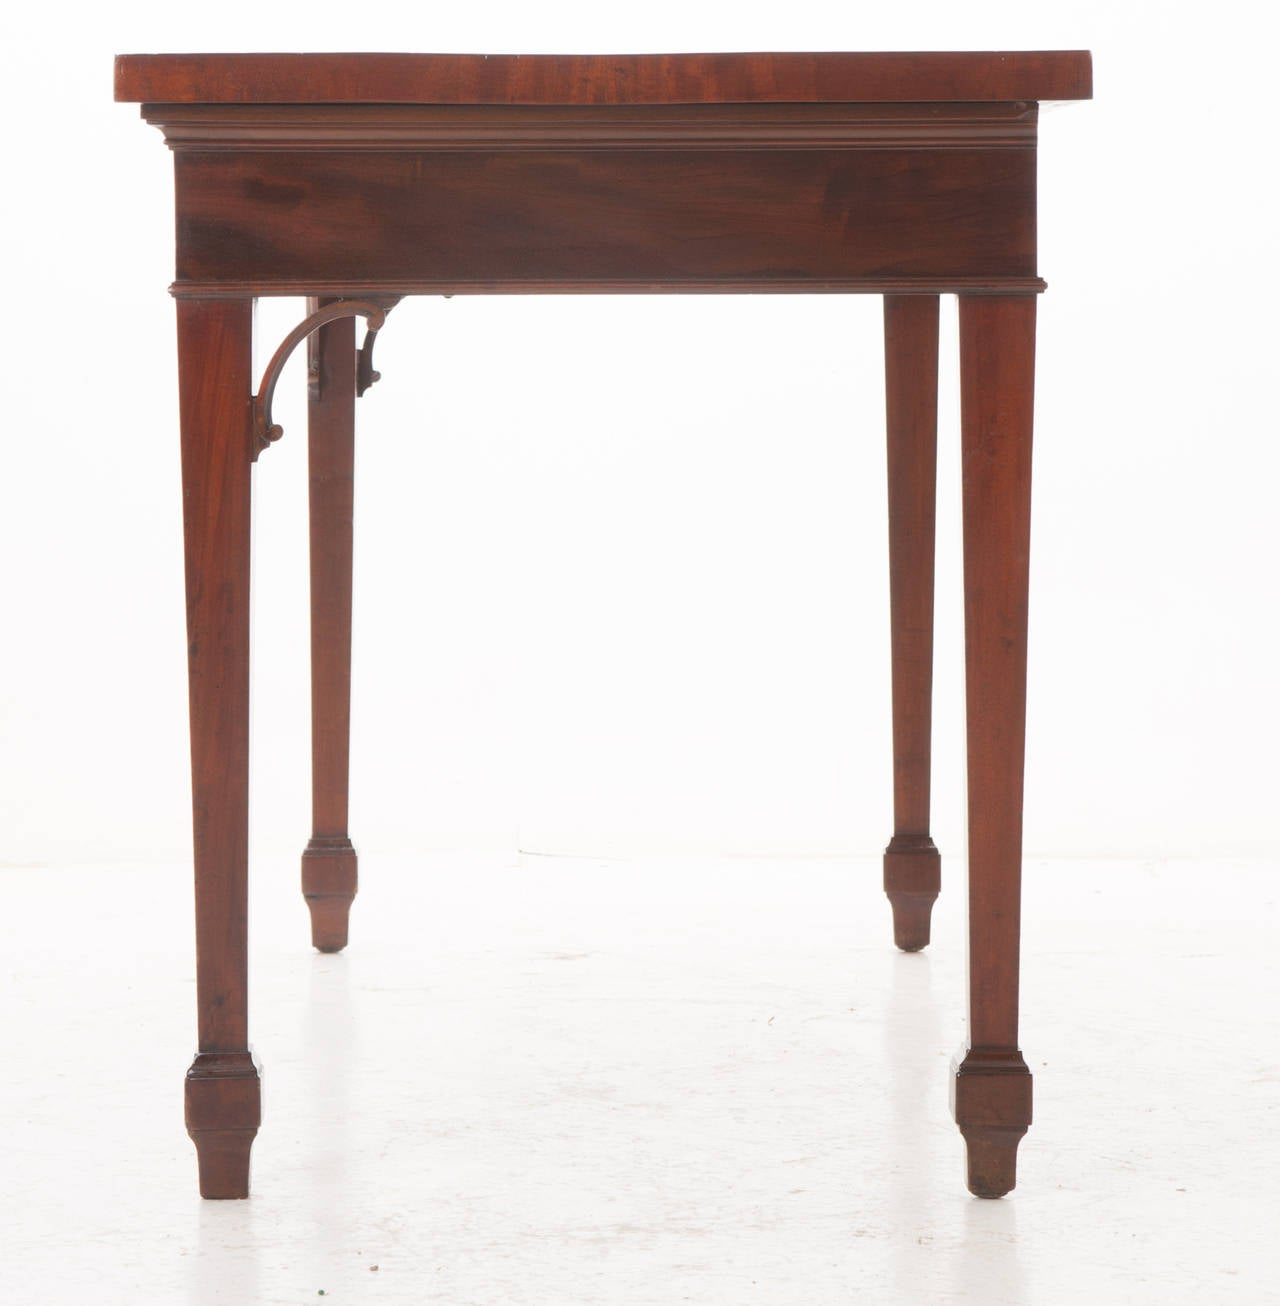 English 19th Century Mahogany Serpentine Server or Console For Sale 1